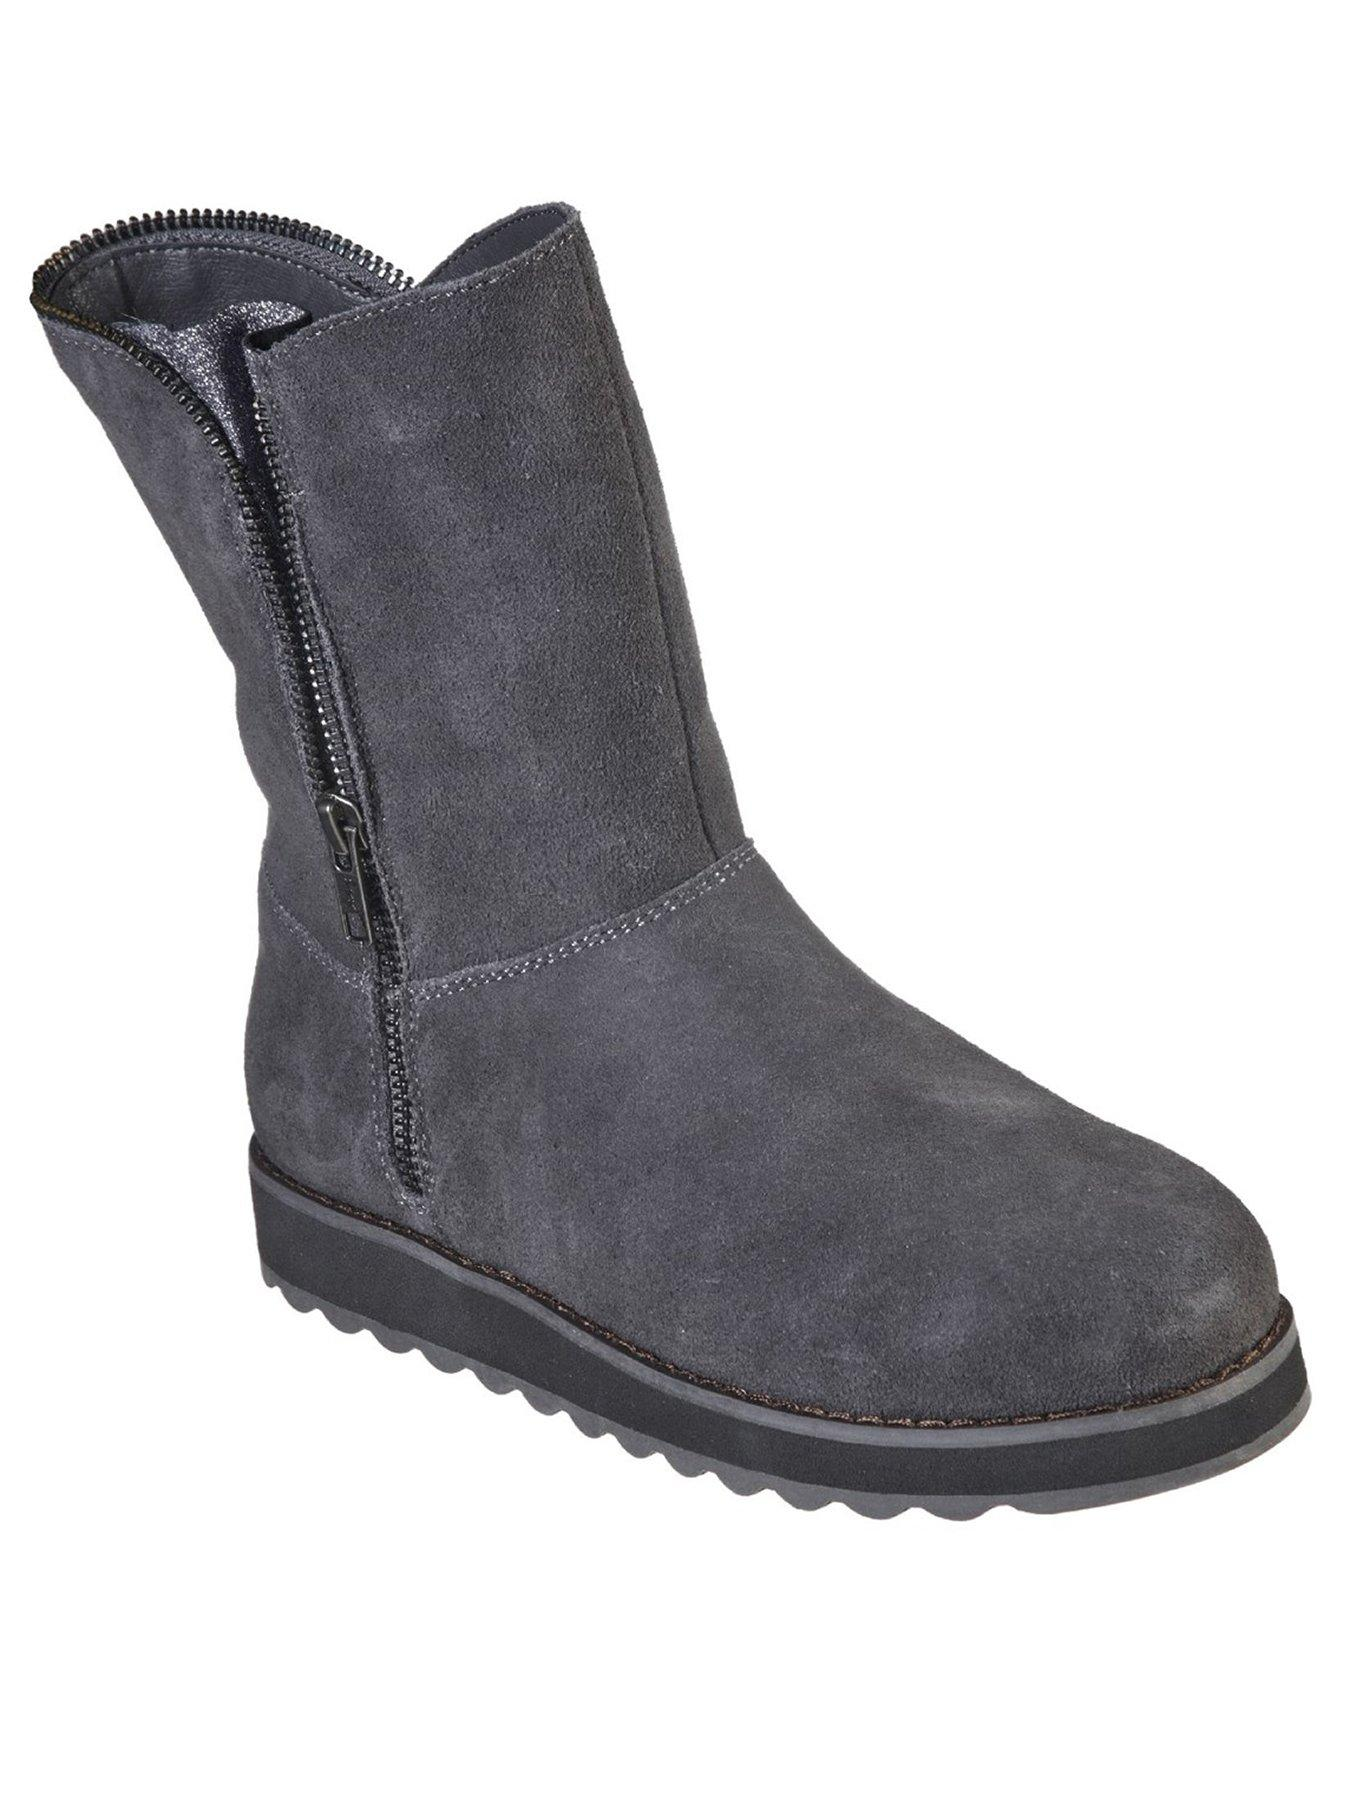 skechers suede zip ankle boot with faux